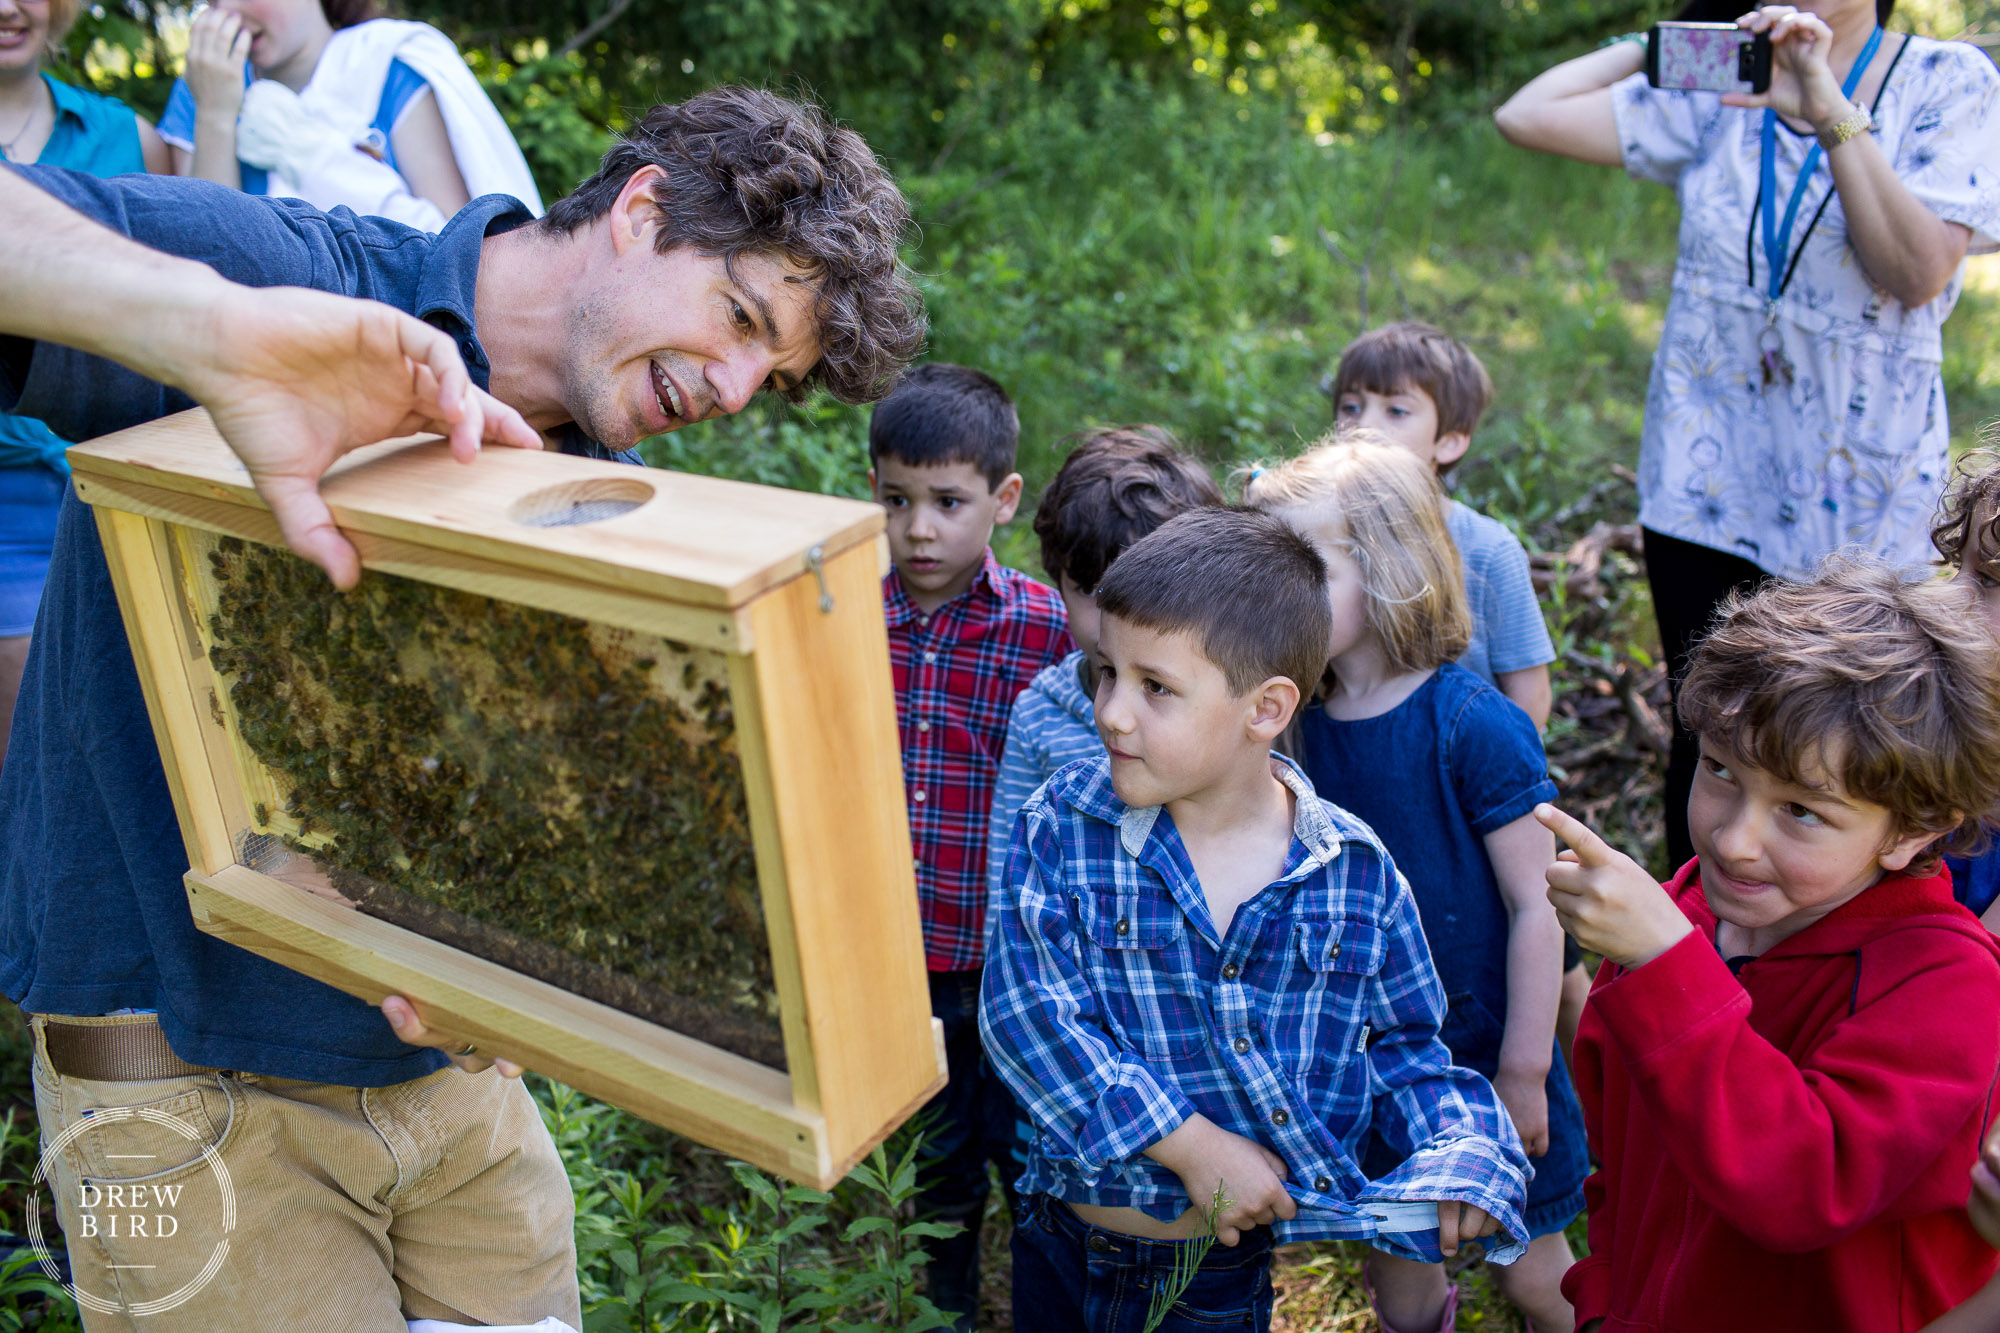 A man teacher shows a group of grade school students a bee hive during an outdoor class at Poughkeepsie Day School in New York. San Francisco independent school photographer and private school education lifestyle photography by Drew Bird.